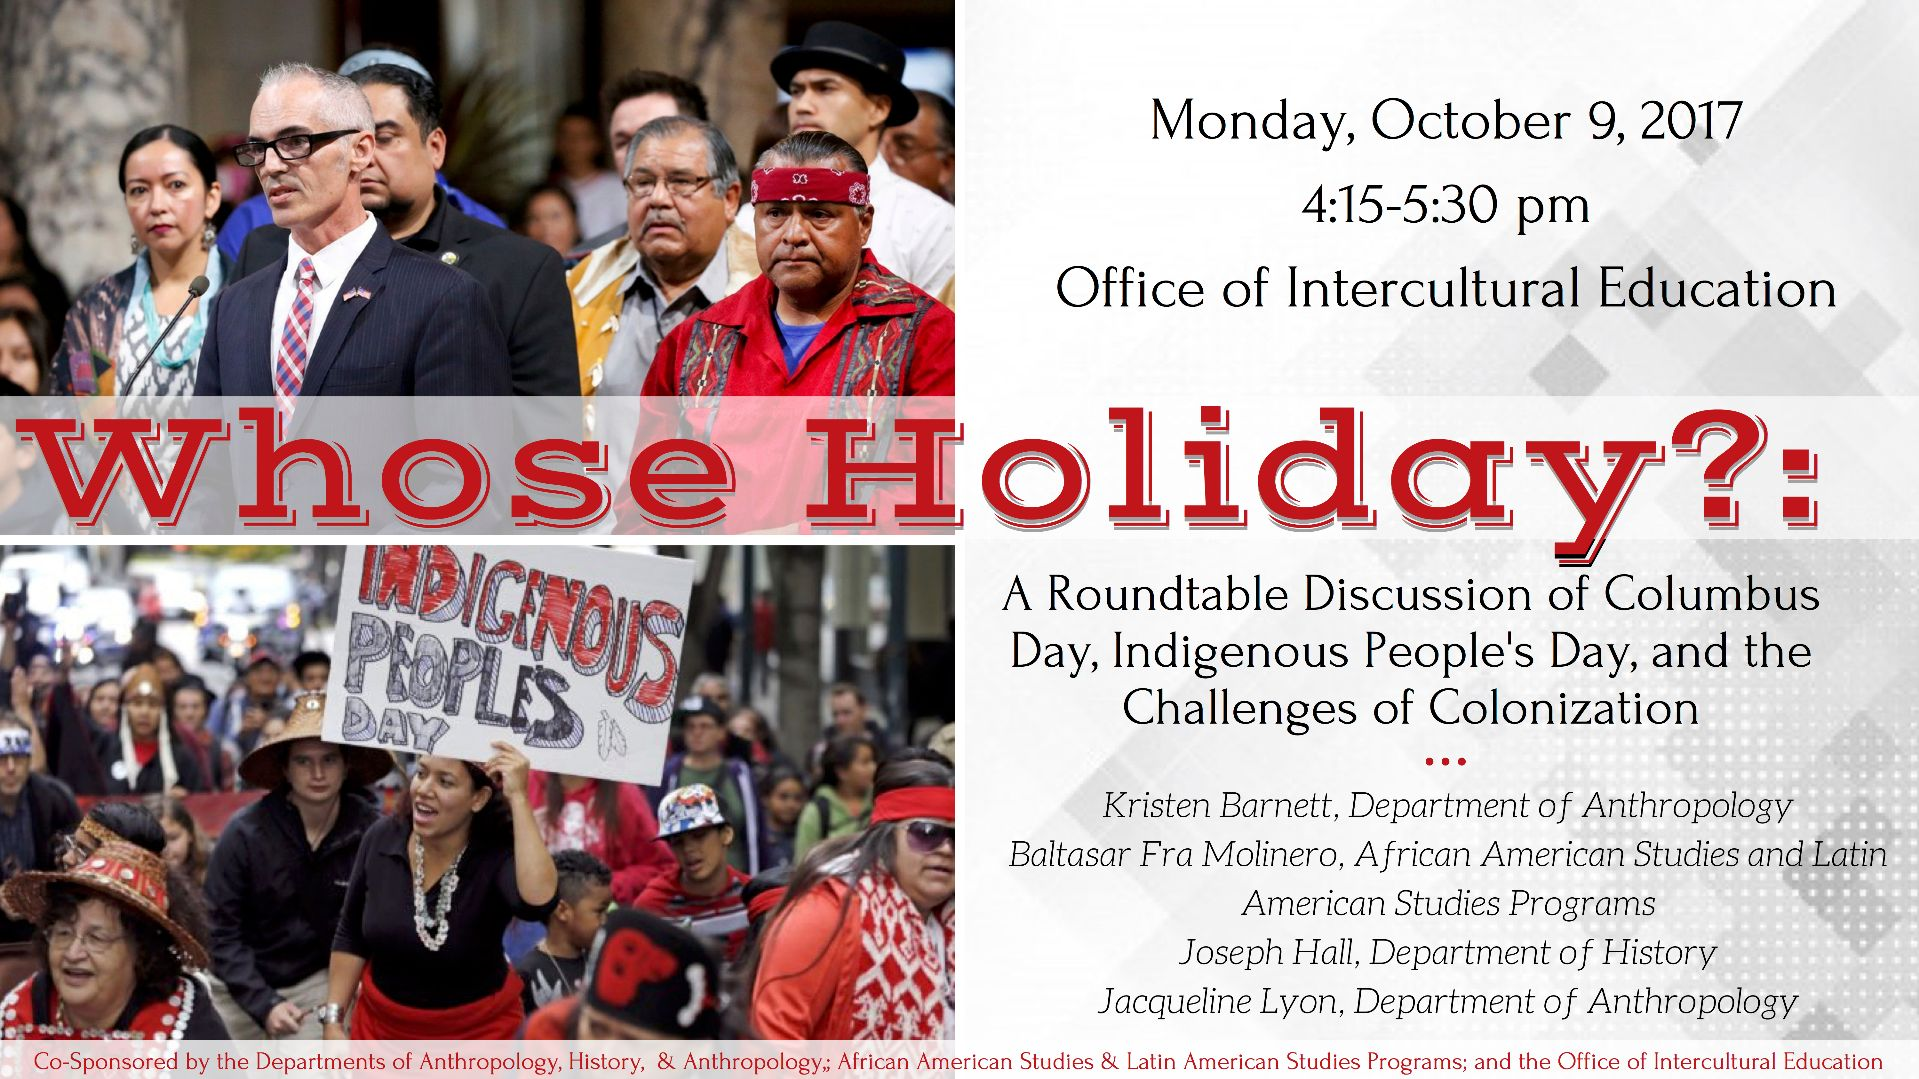 Whose Holiday-- A Roundtable Discussion of Columbus Day, Indigenous People's Day, and the Challenges of Colonization